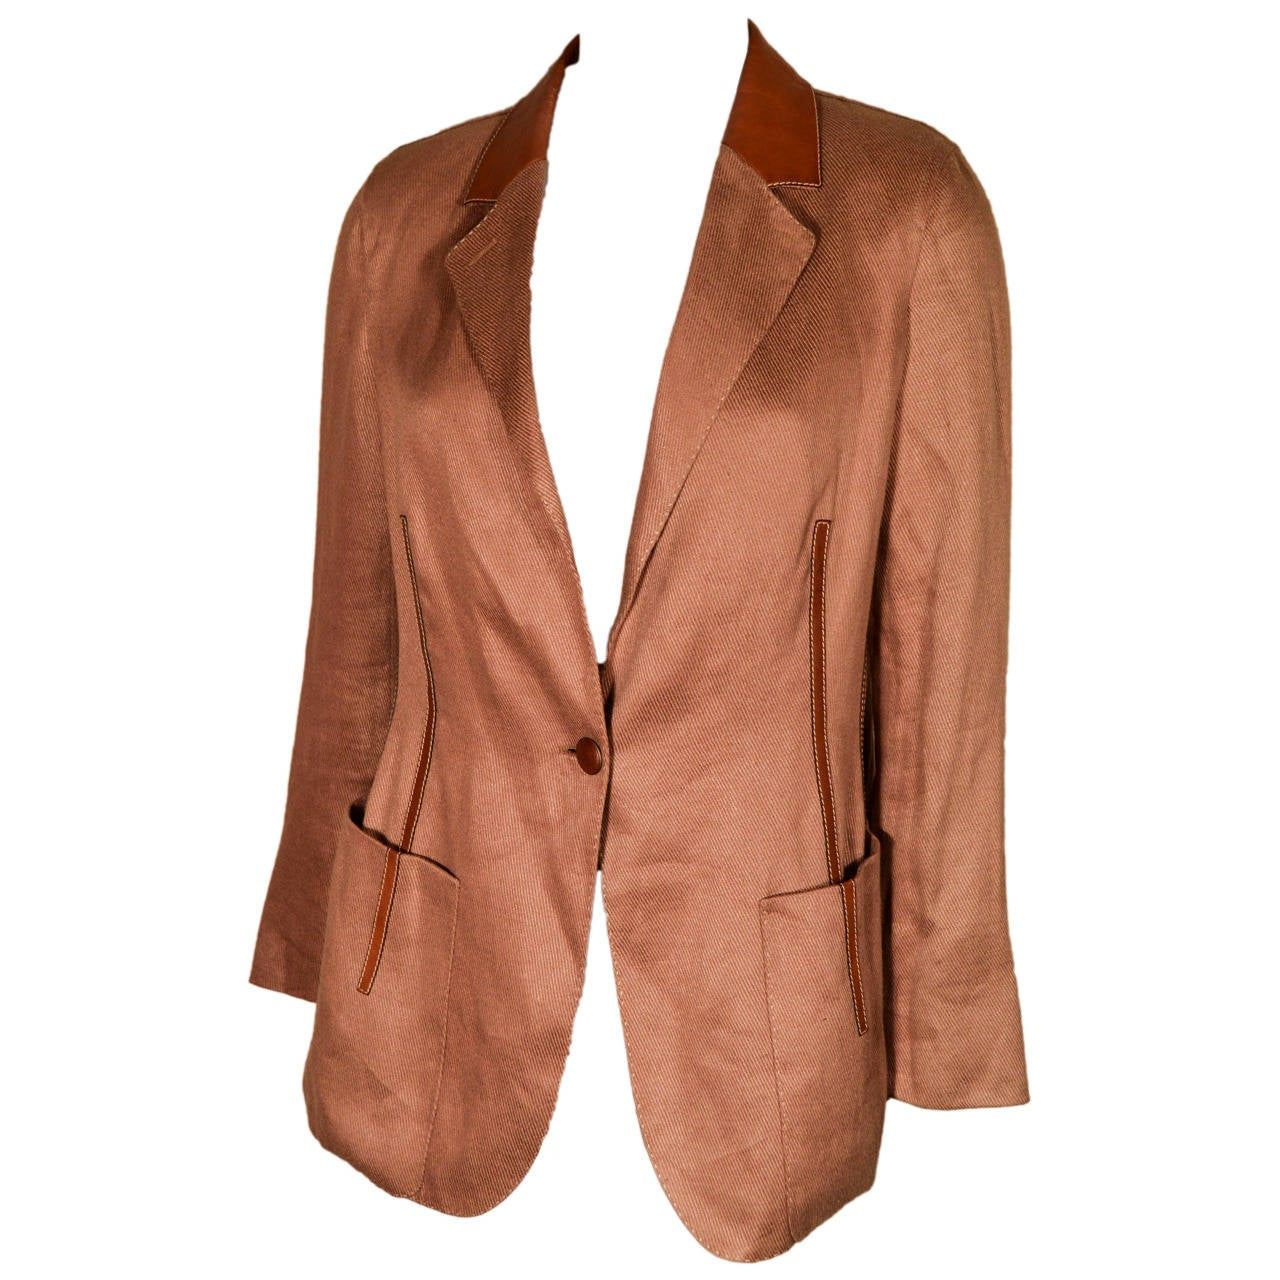 Hermes Linen Blazer Jacket with Leather Piping